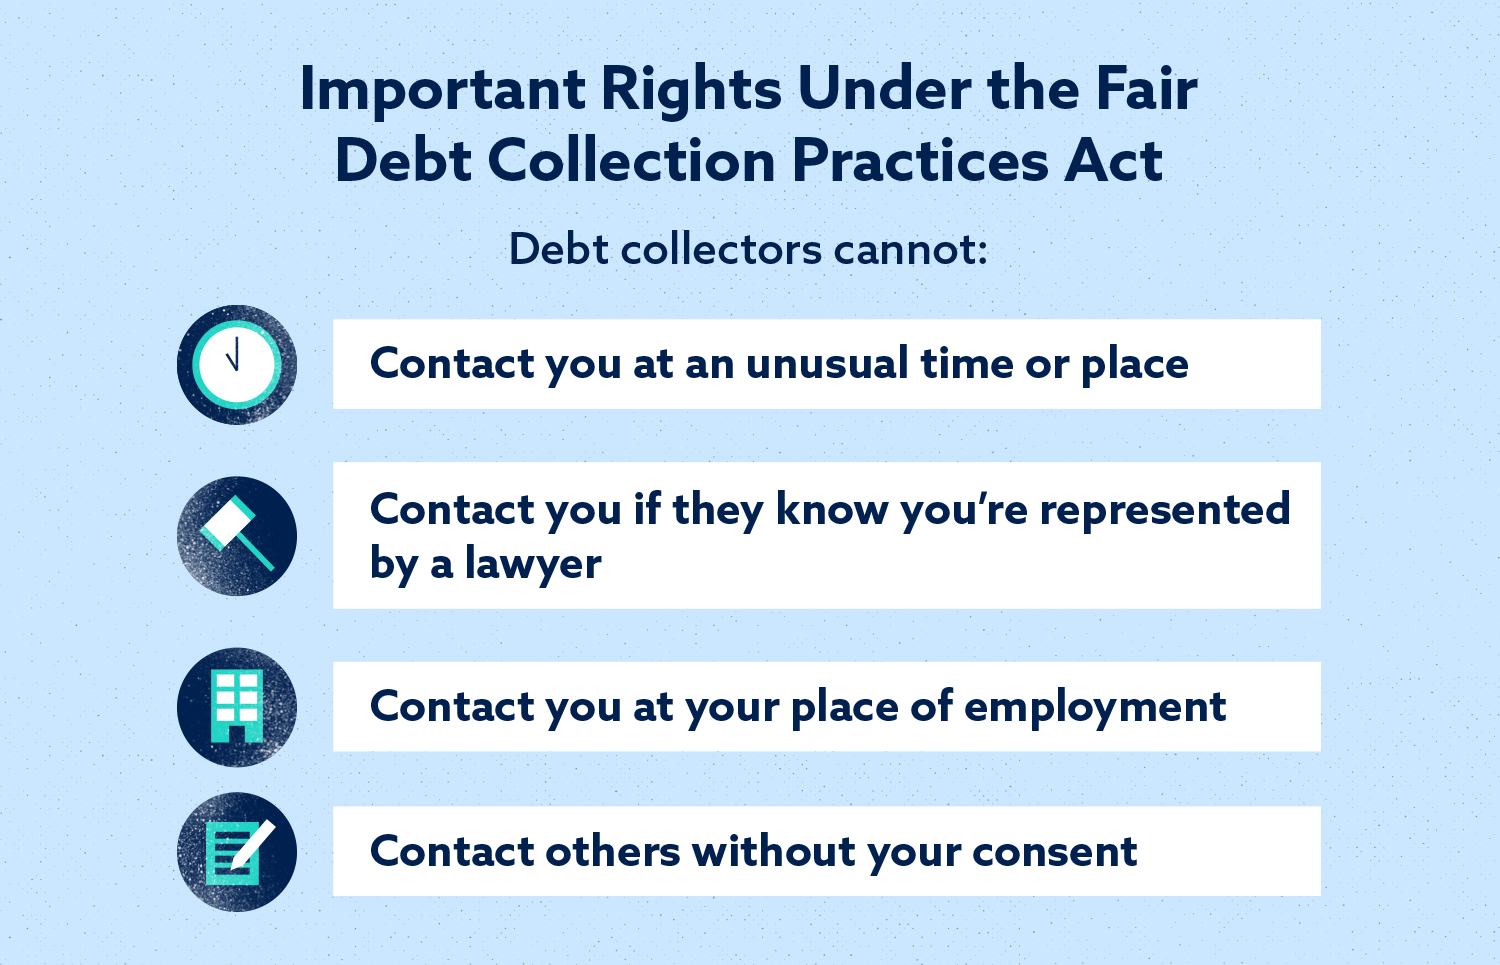 Important Rights Under the Fair Debt Collection Practices Act Image